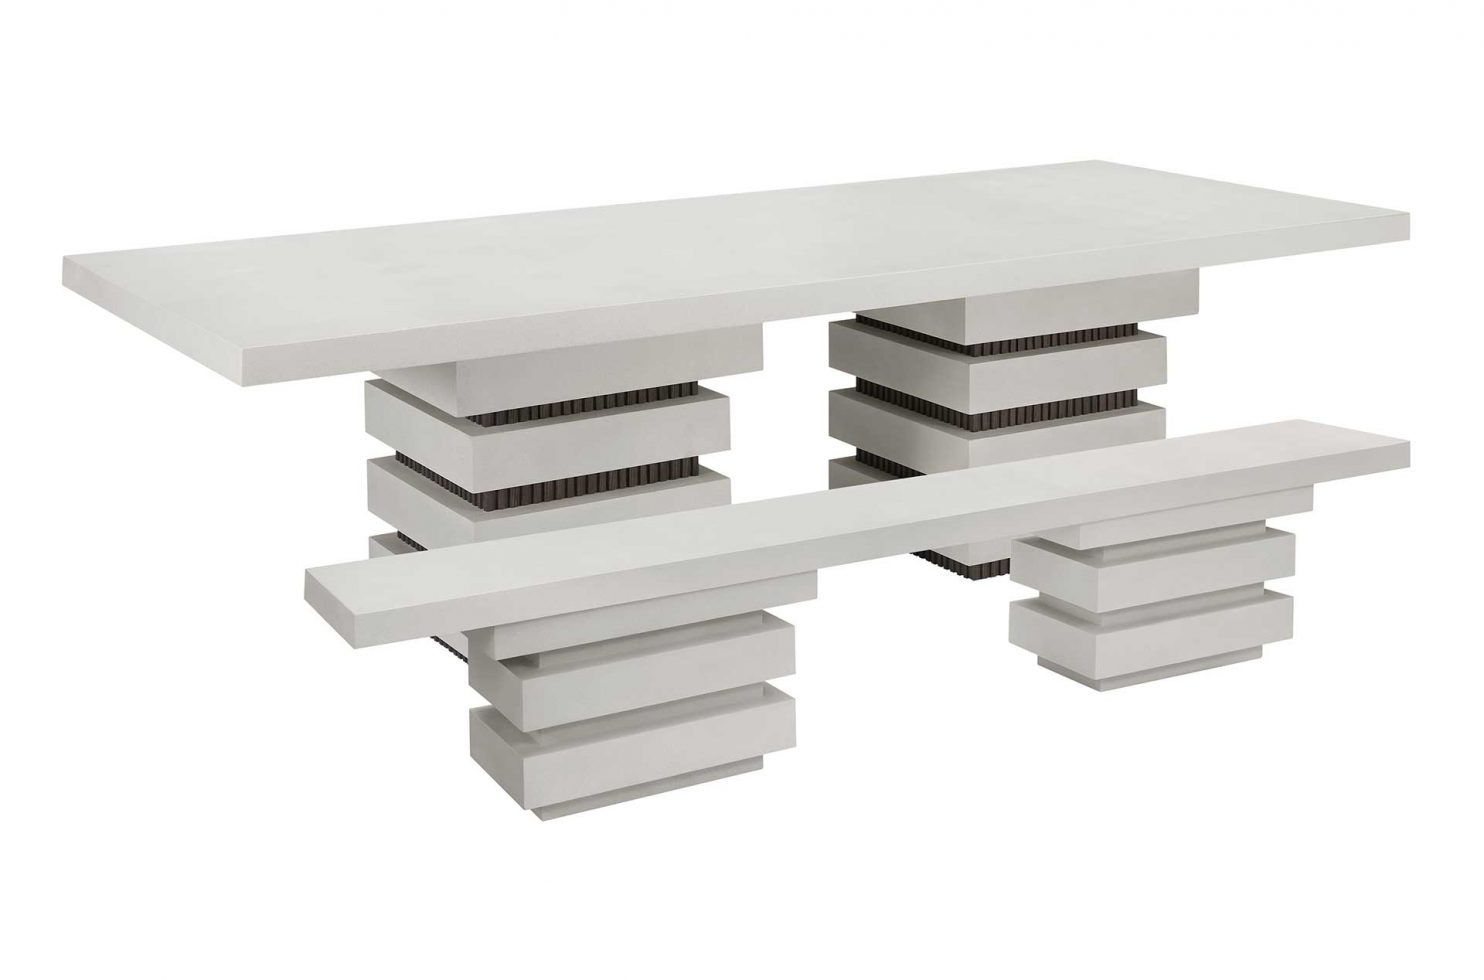 prov frp meditation group bench rectangle energy table S1568100215 S1567134712 1 3Q front above web